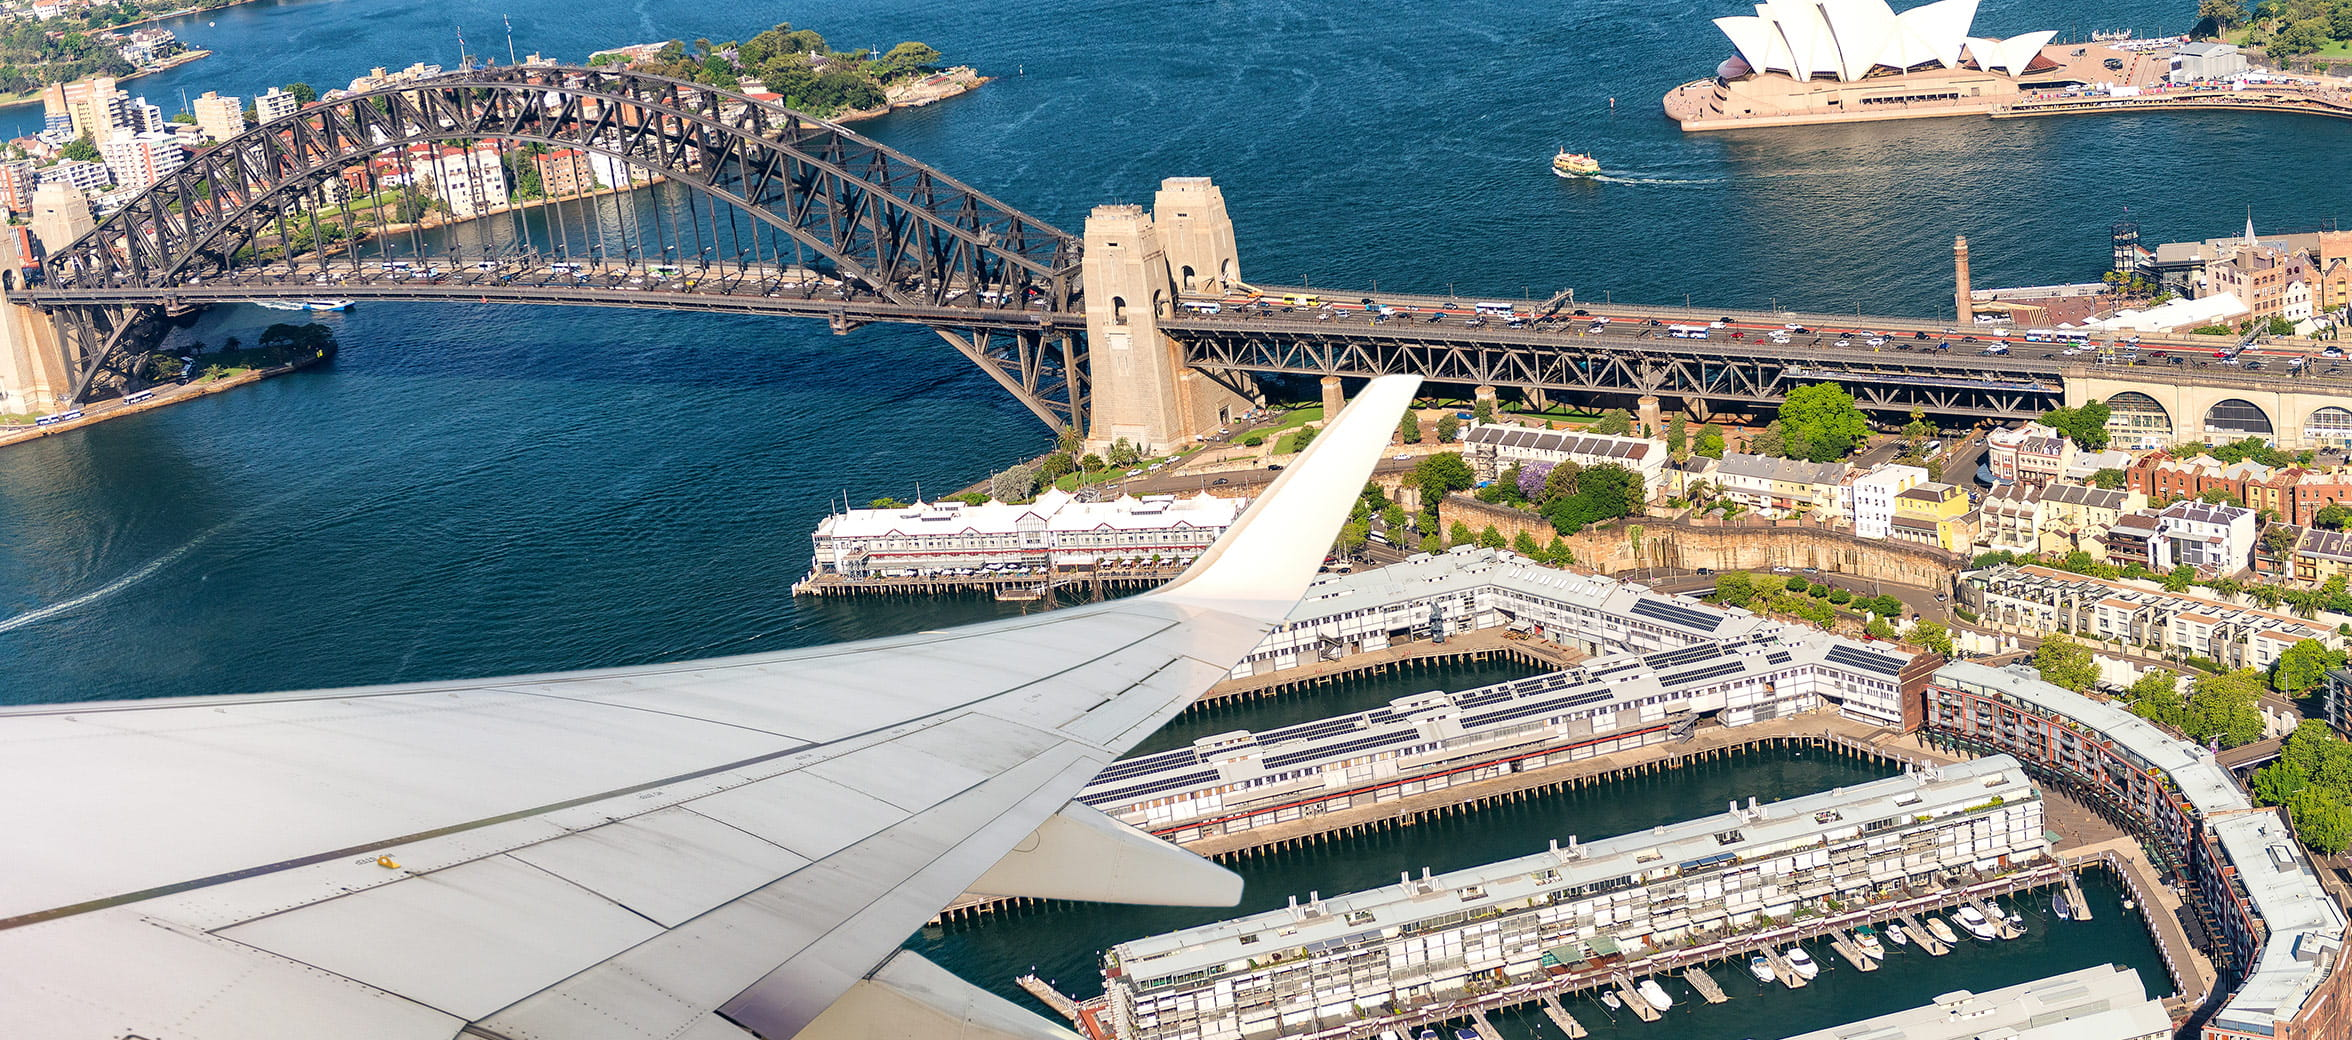 Australian Tourism and Aviation Industry